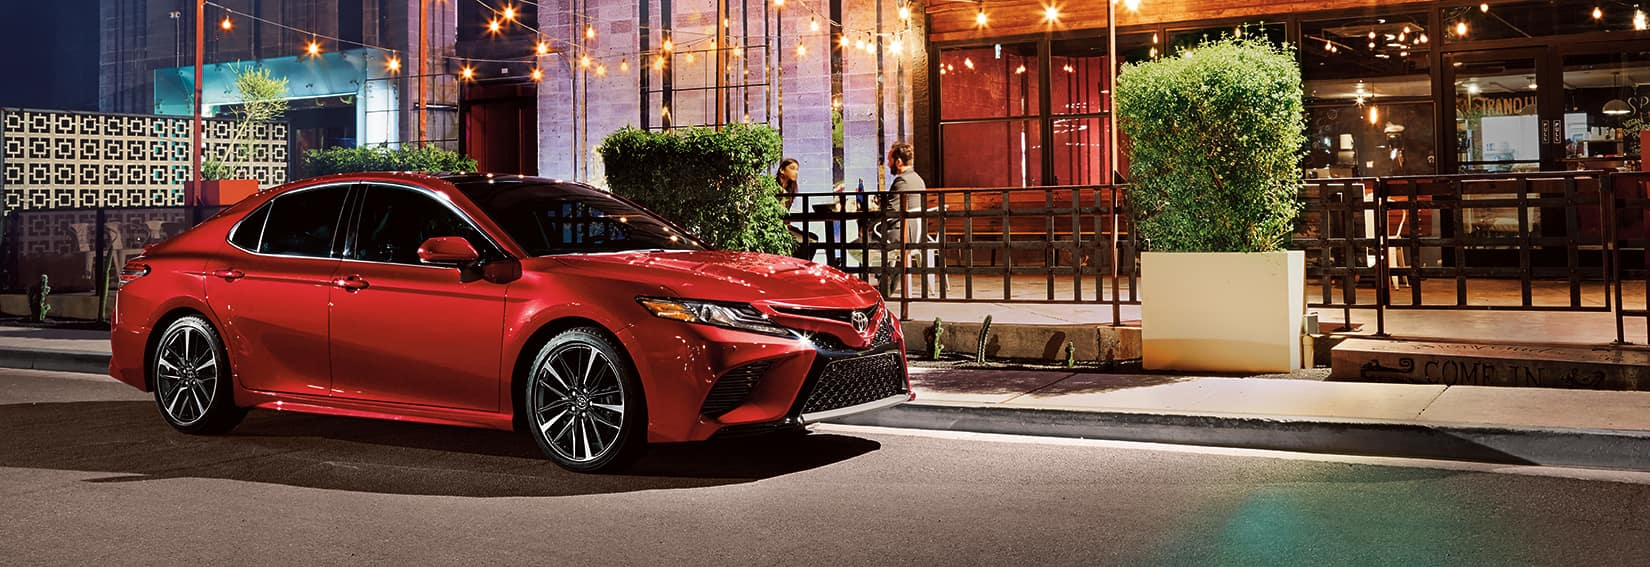 Halterman's Toyota is a Toyota Dealership near Tannersville, PA   2020 Toyota Camry parked in from of restaurant at night